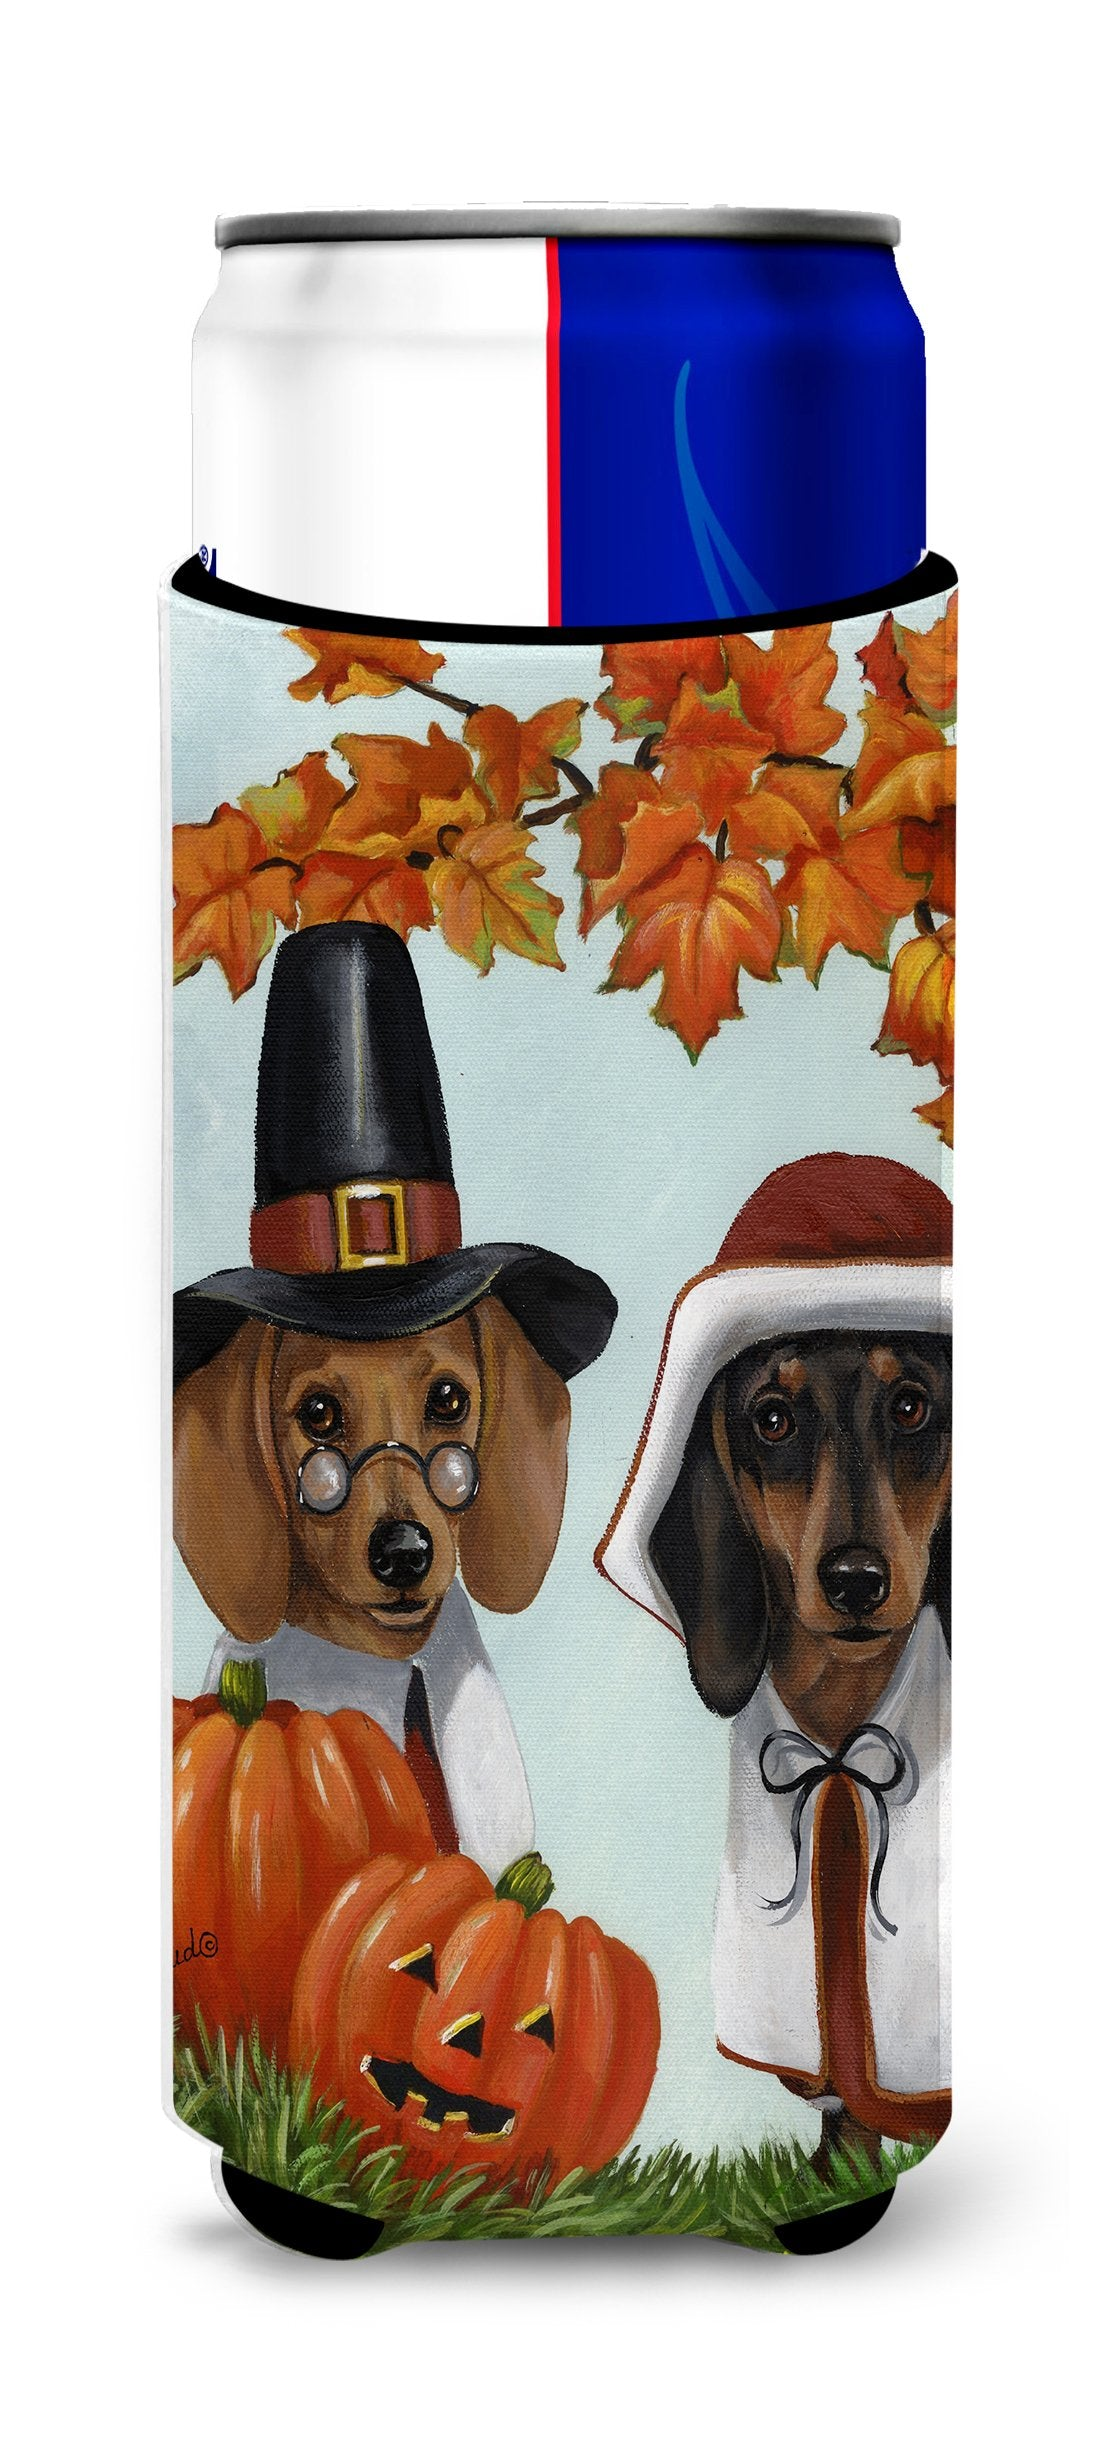 Dachshund Thanksgiving Pilgrims Ultra Hugger for slim cans PPP3087MUK by Caroline's Treasures